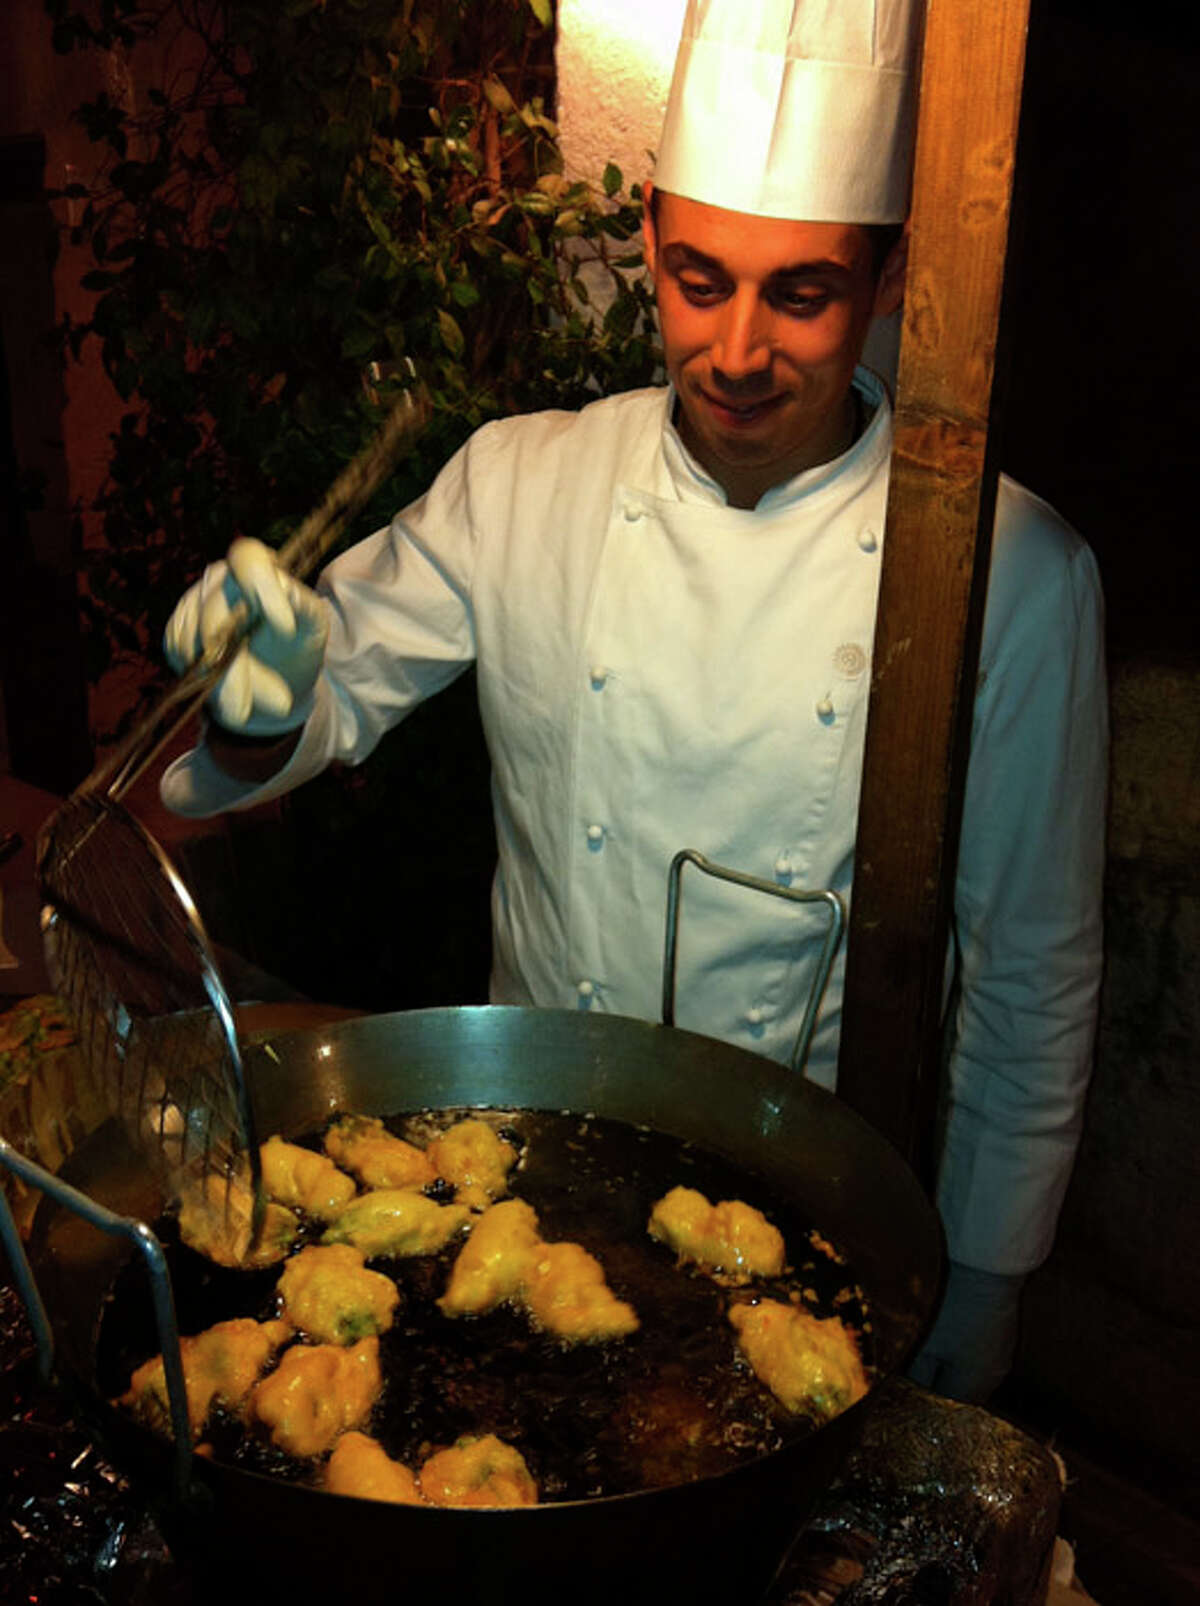 A chef prepares fried dough (to be drizzled with honey) at Masseria Torre Coccaro